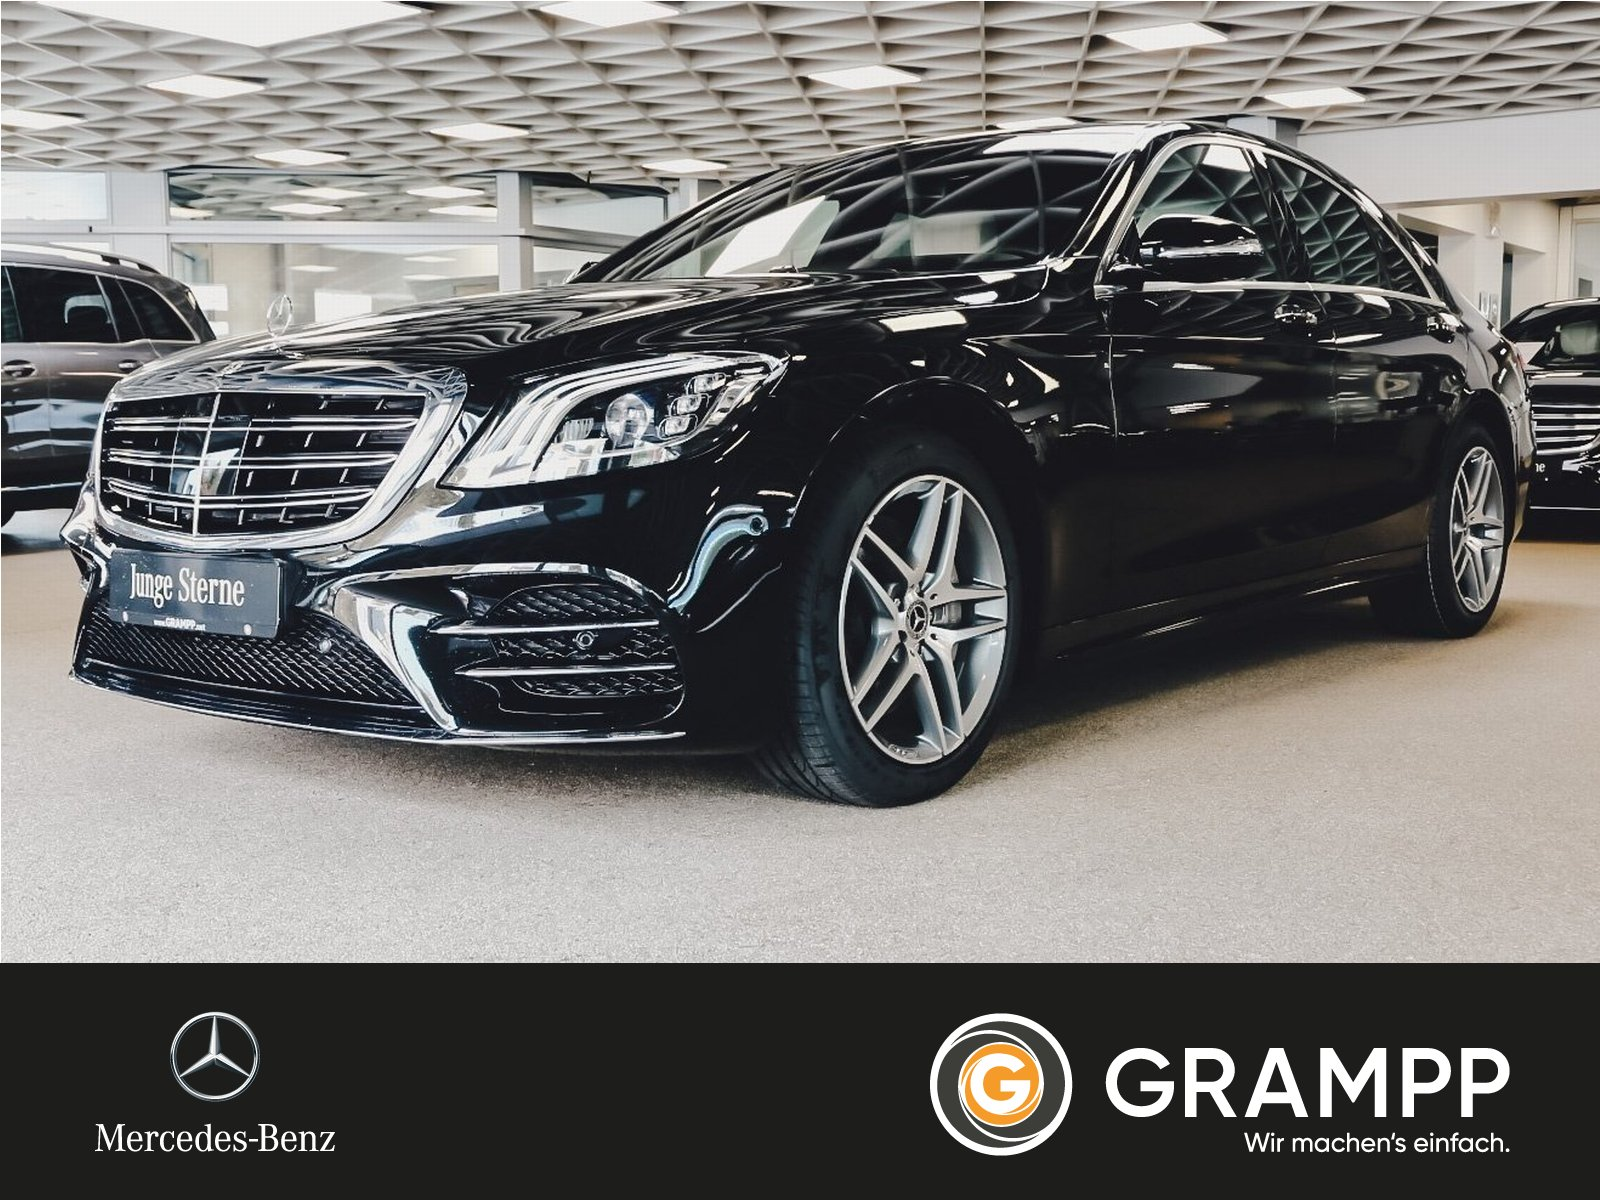 Mercedes-Benz S 450 AMG Distronic/Fond-DVD/Nachtsicht/Massage, Jahr 2019, Hybrid